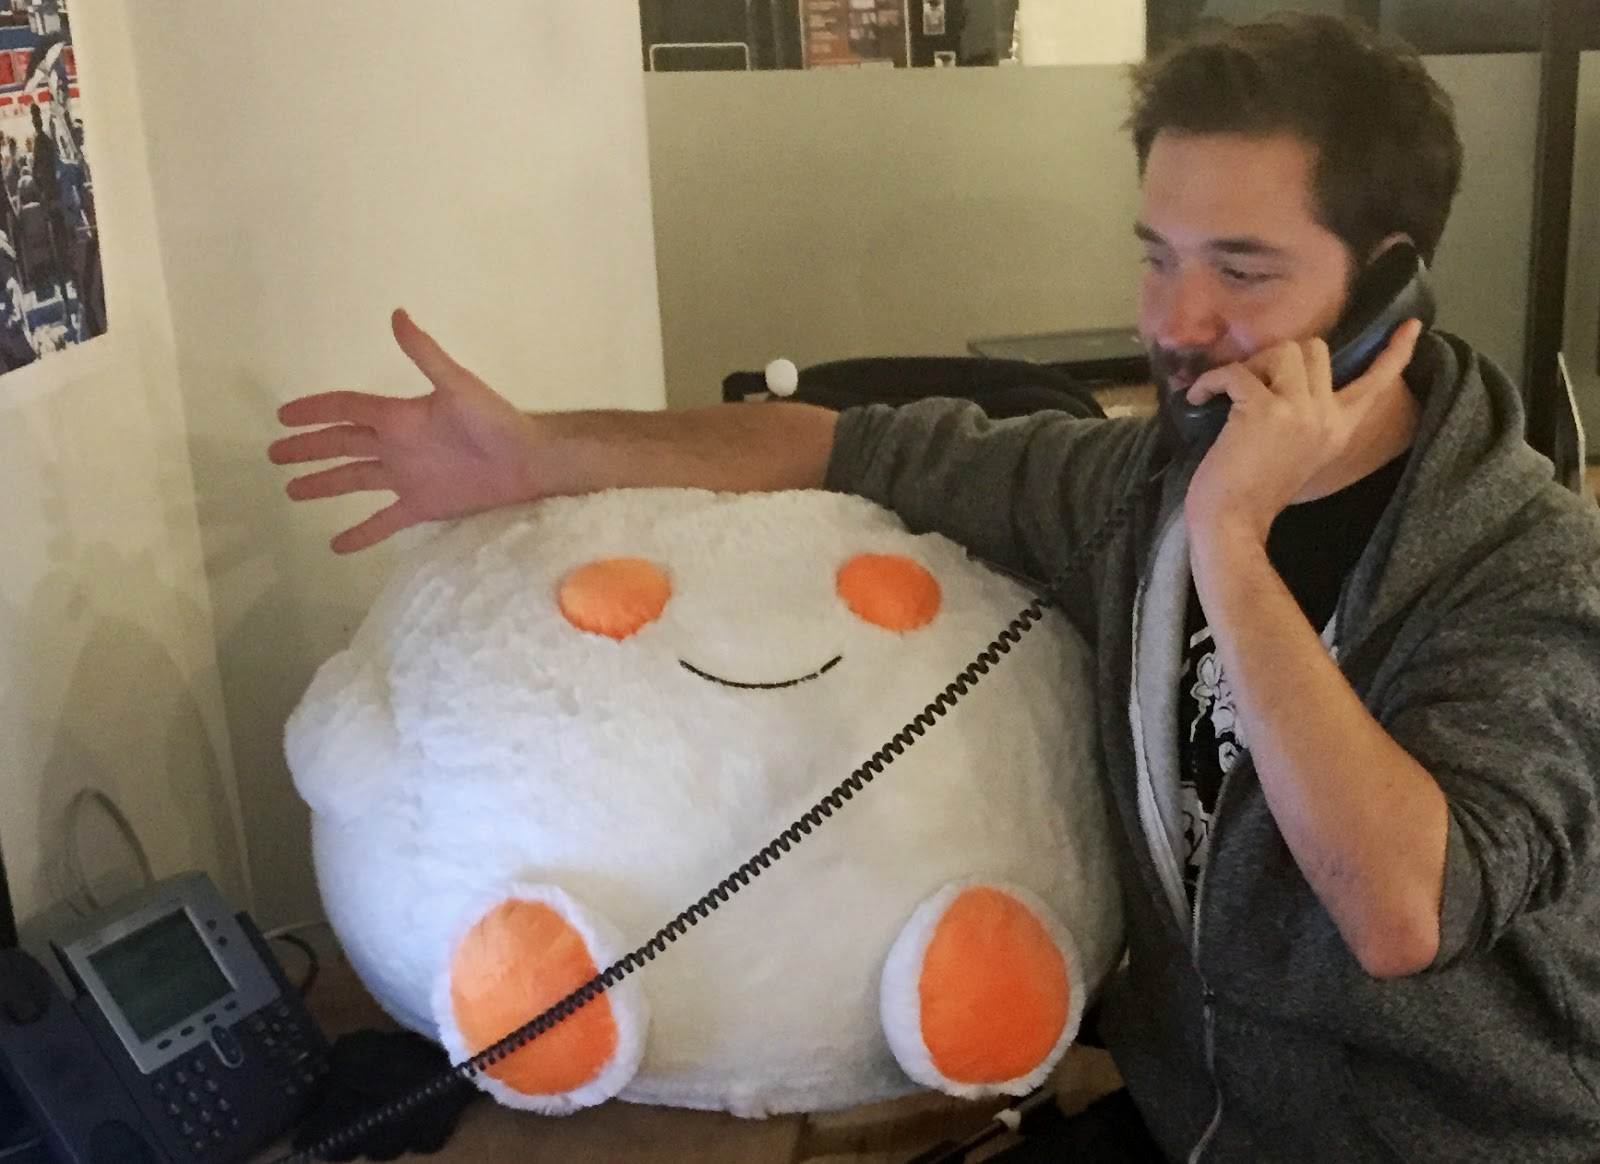 Reddit Co-Founder urges all the Internet Users to Contact FCC Today